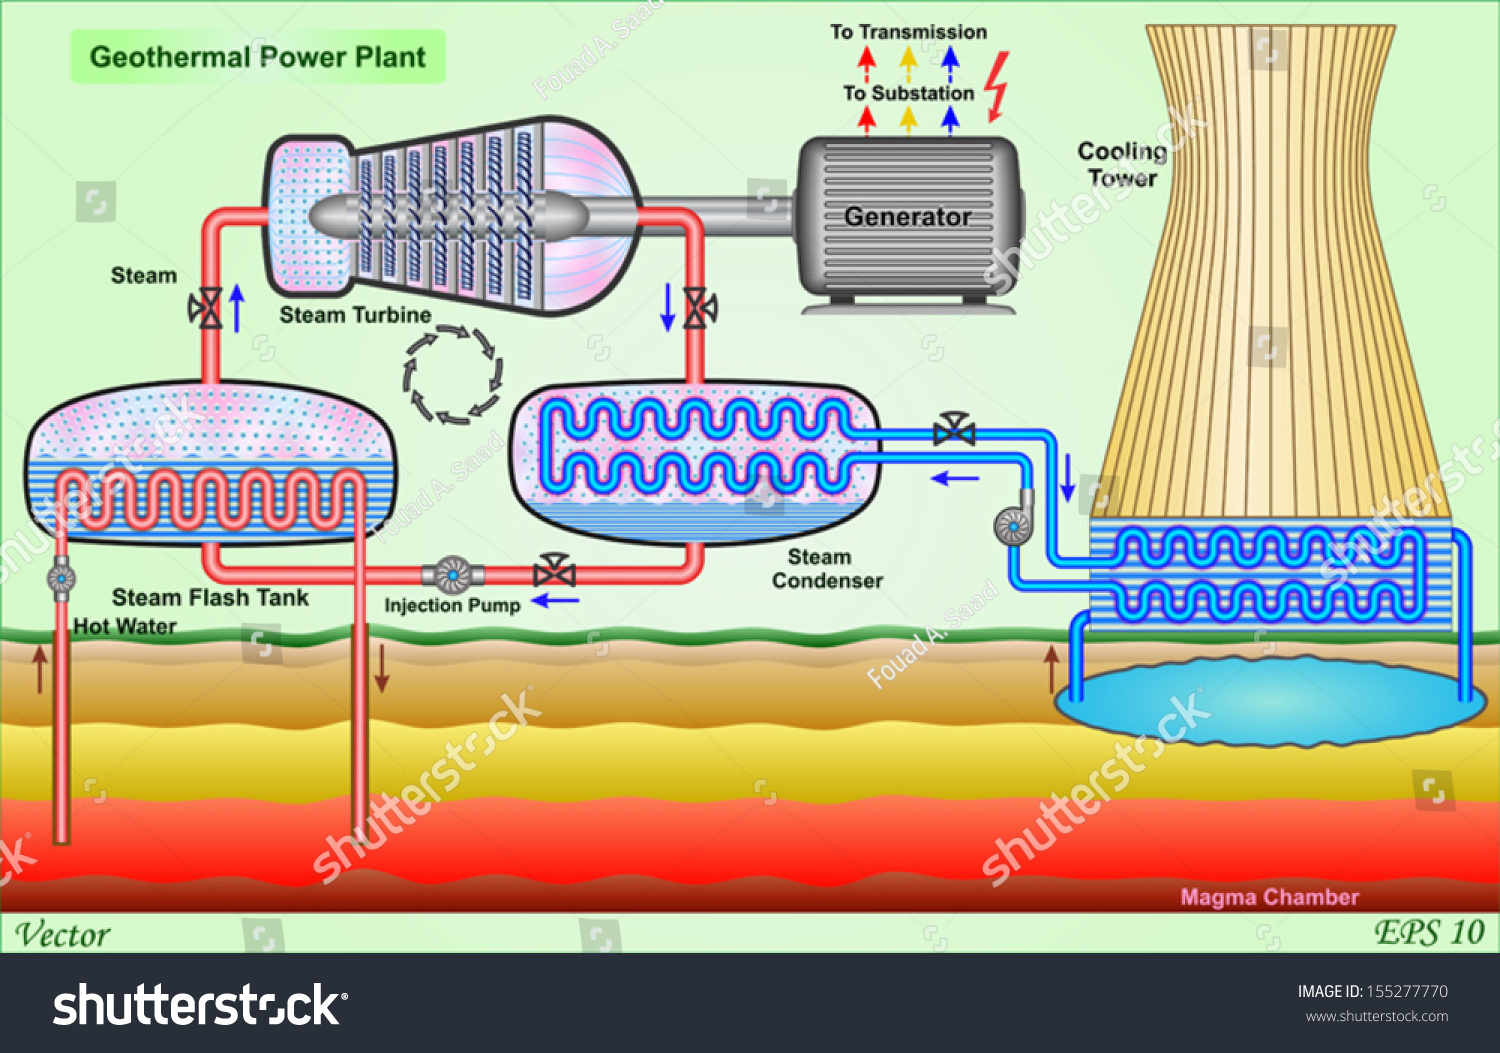 Geothermal Power Plant Stock Vector Illustration 155277770 ...